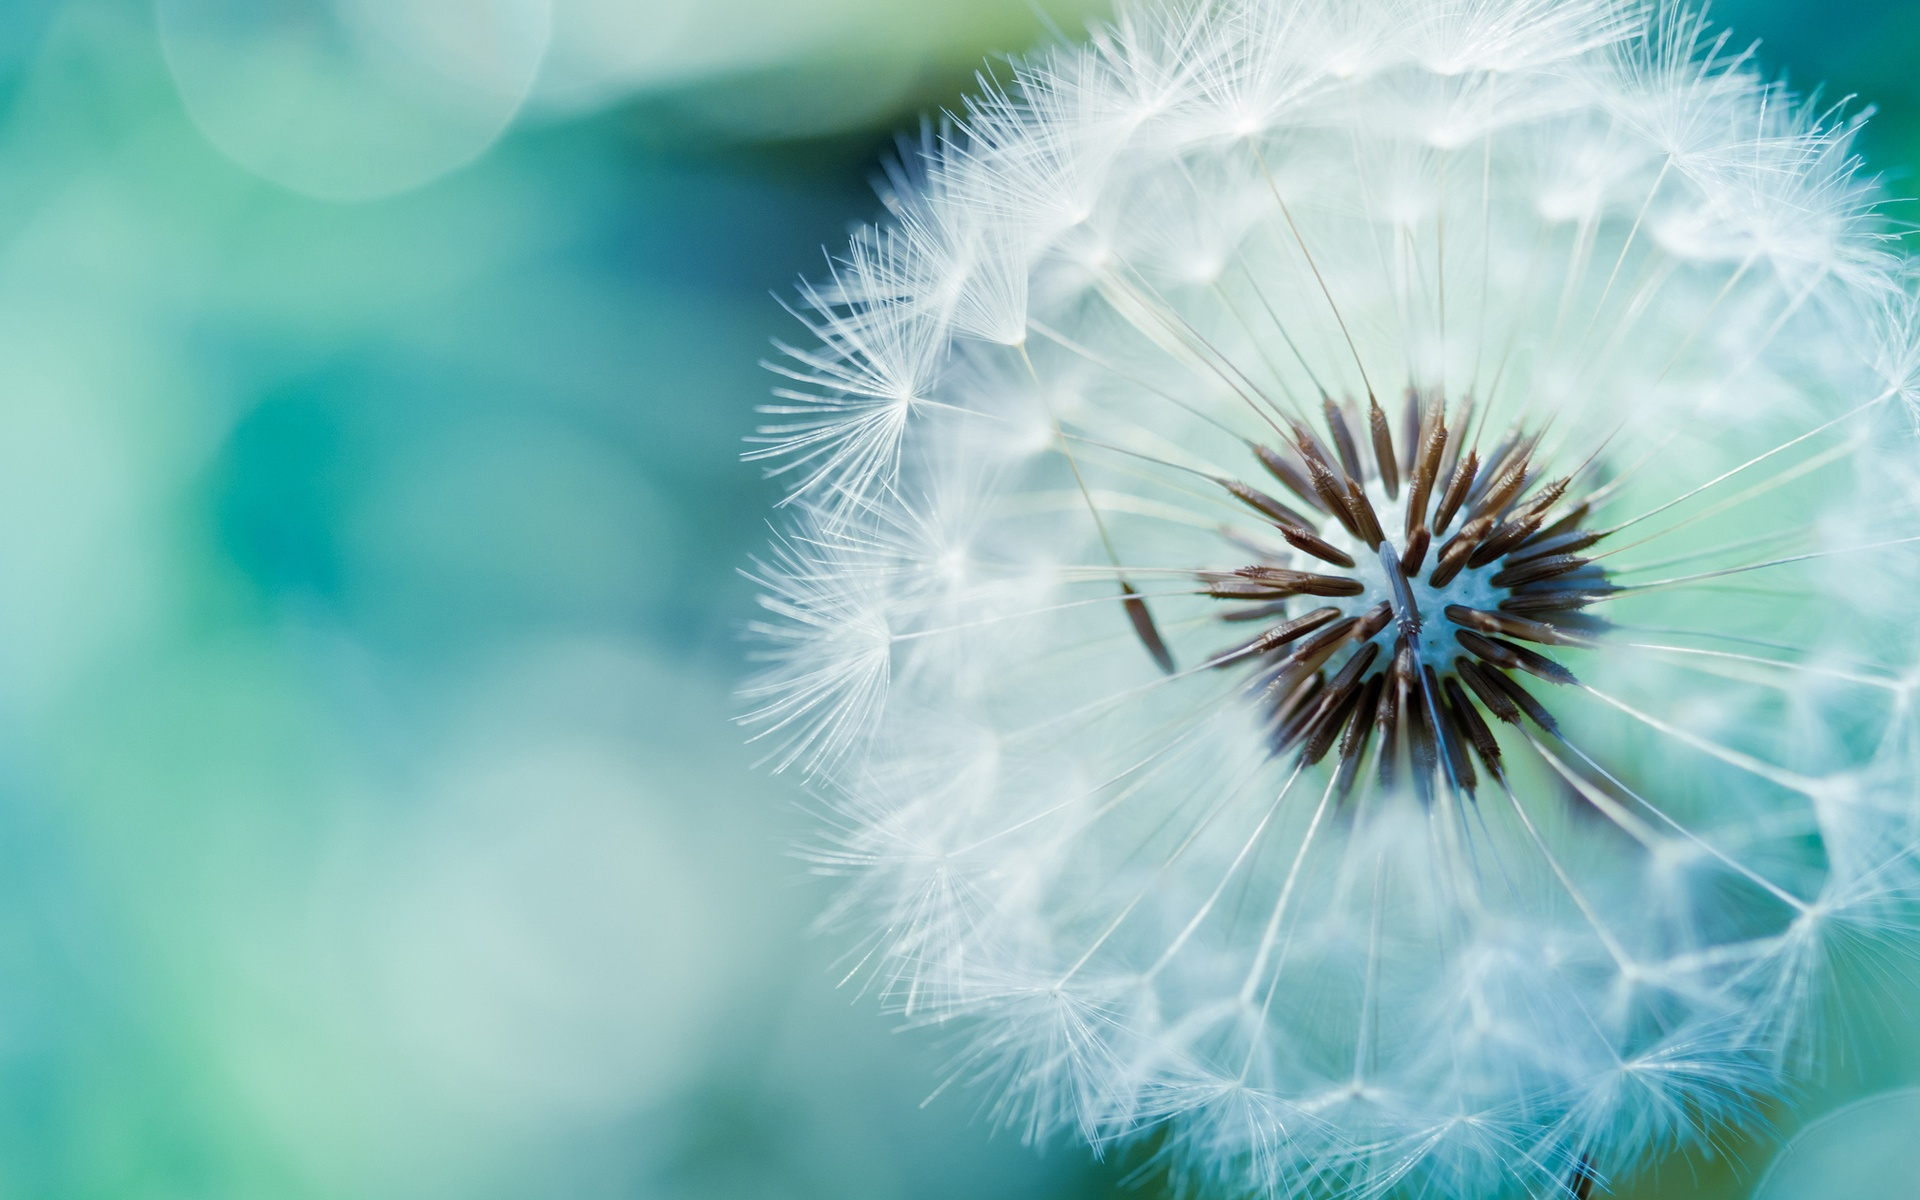 Dandelion Flower Hd Wallpaper Pretty Backgrounds Wide Xpx